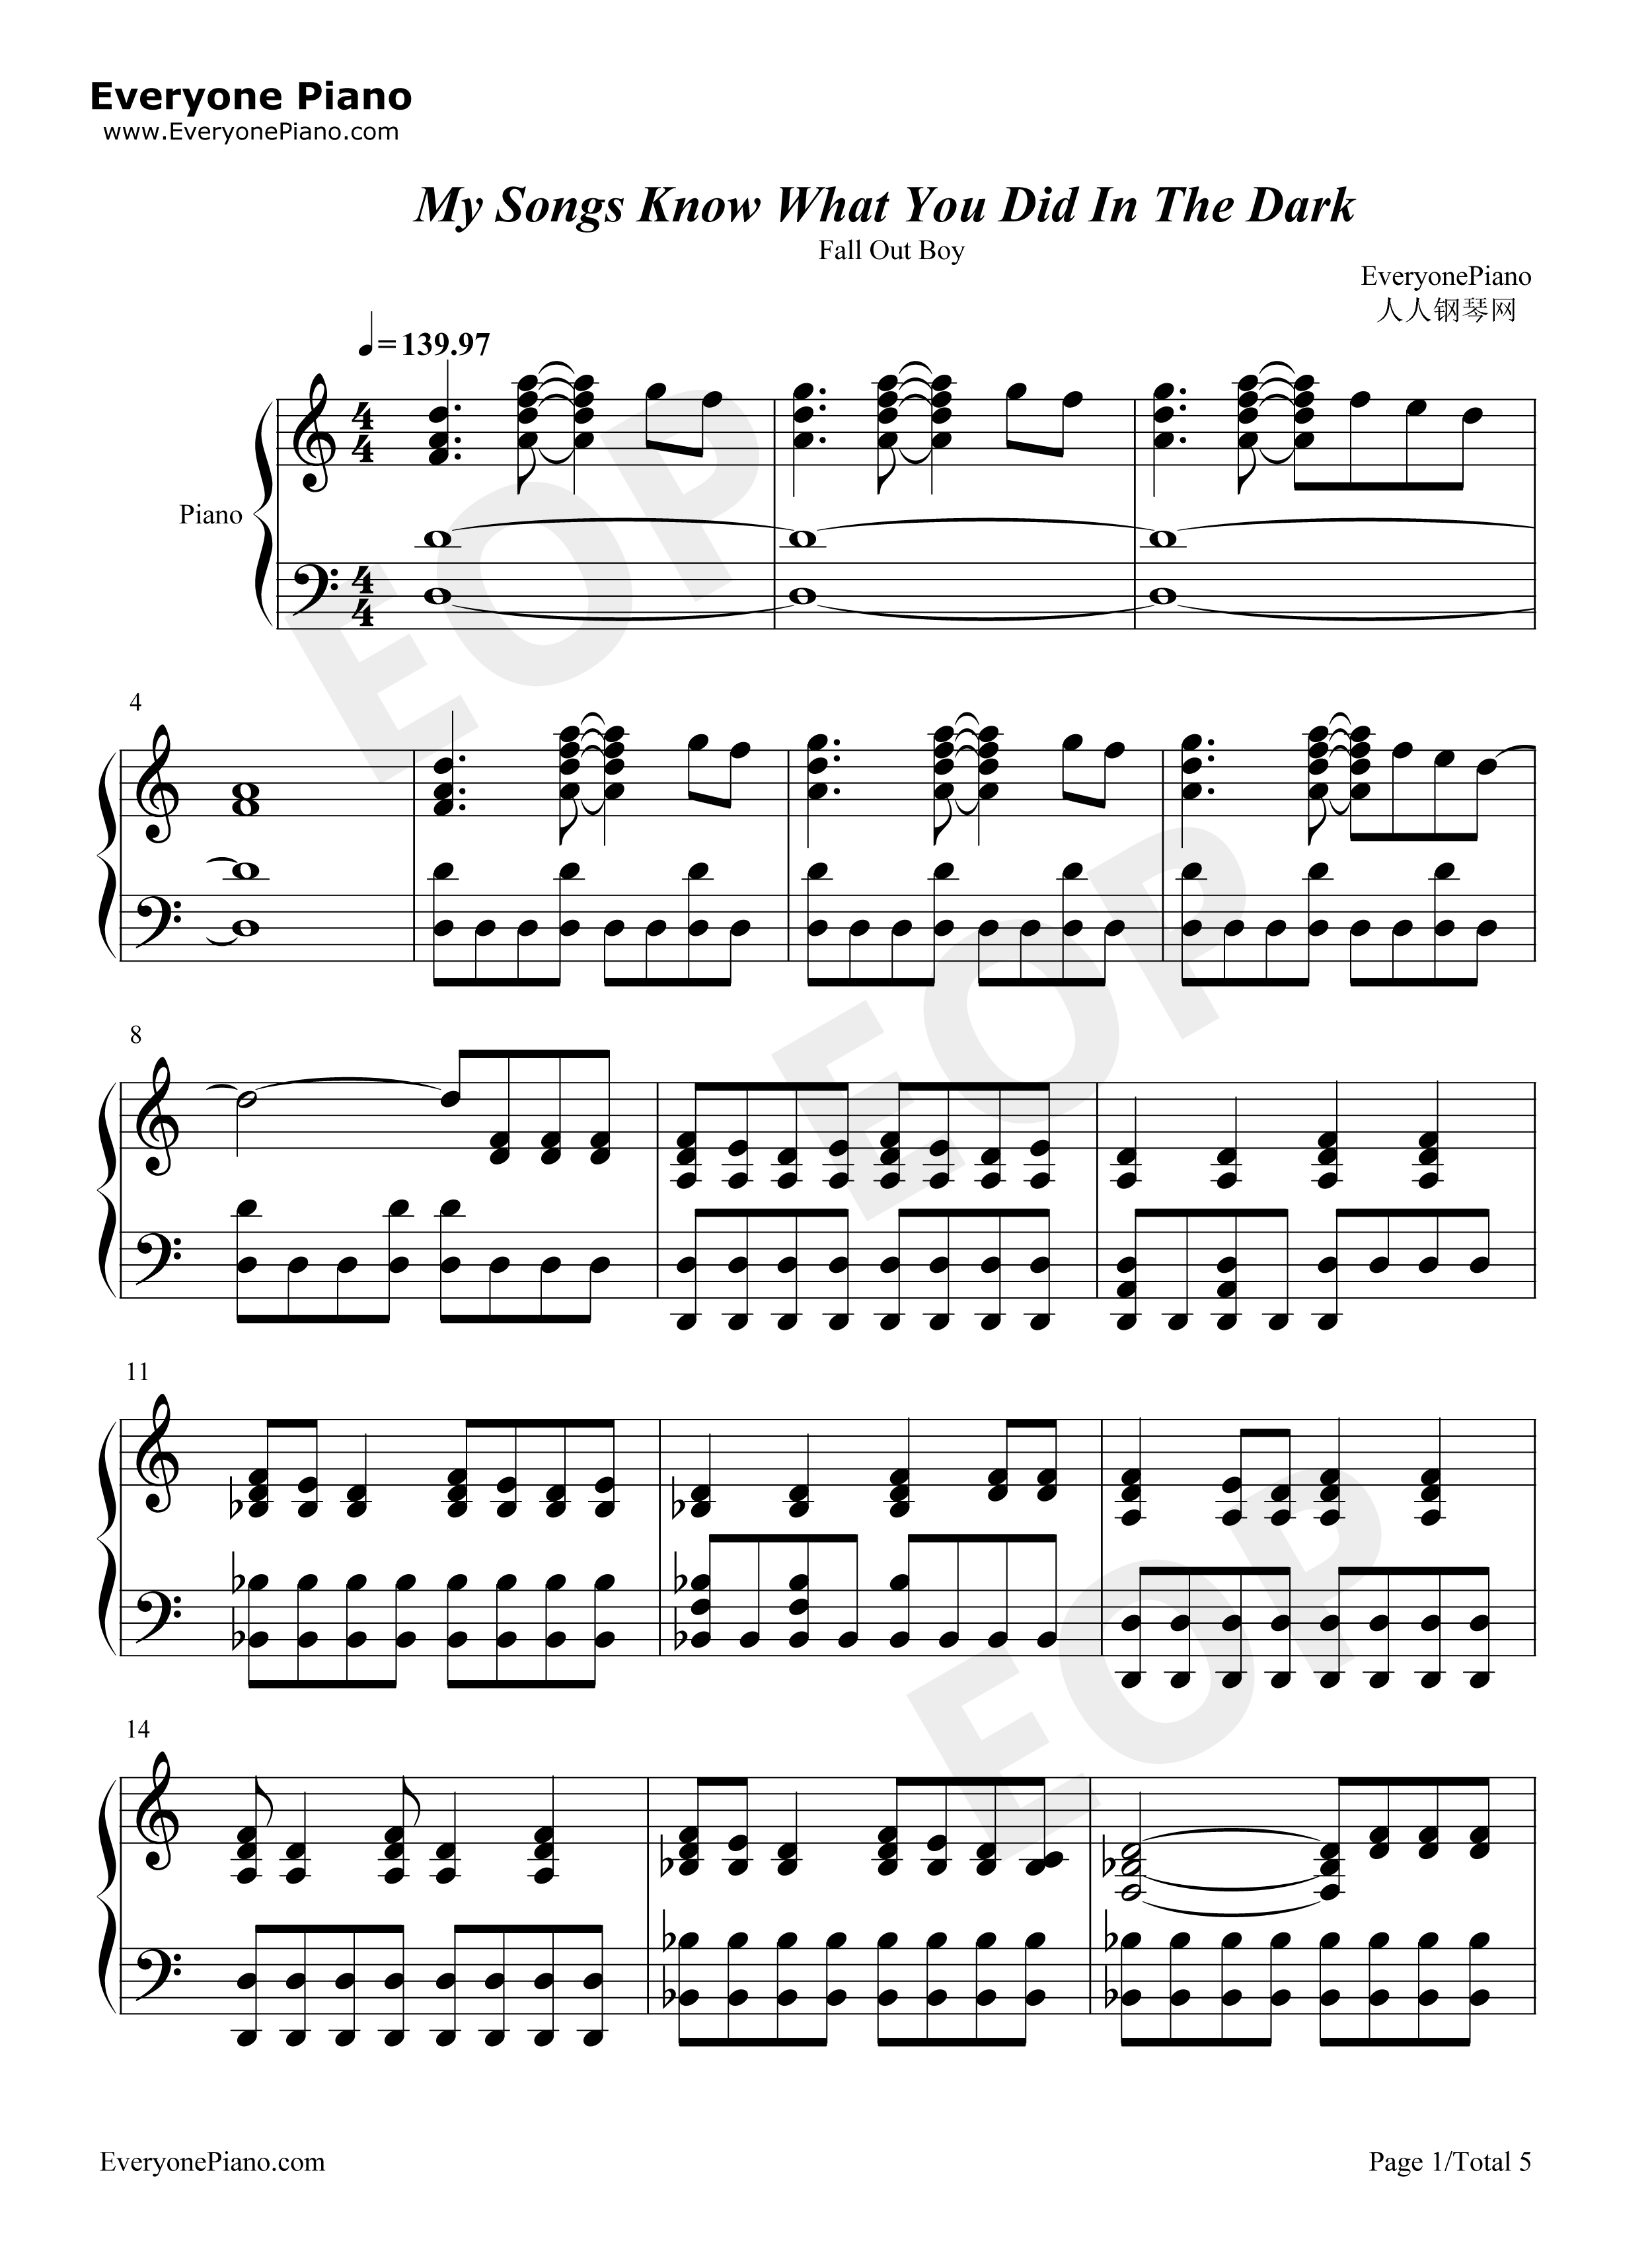 My Songs Know What You Did In The Dark Stave Preview 1-Free Piano Sheet Music u0026 Piano Chords